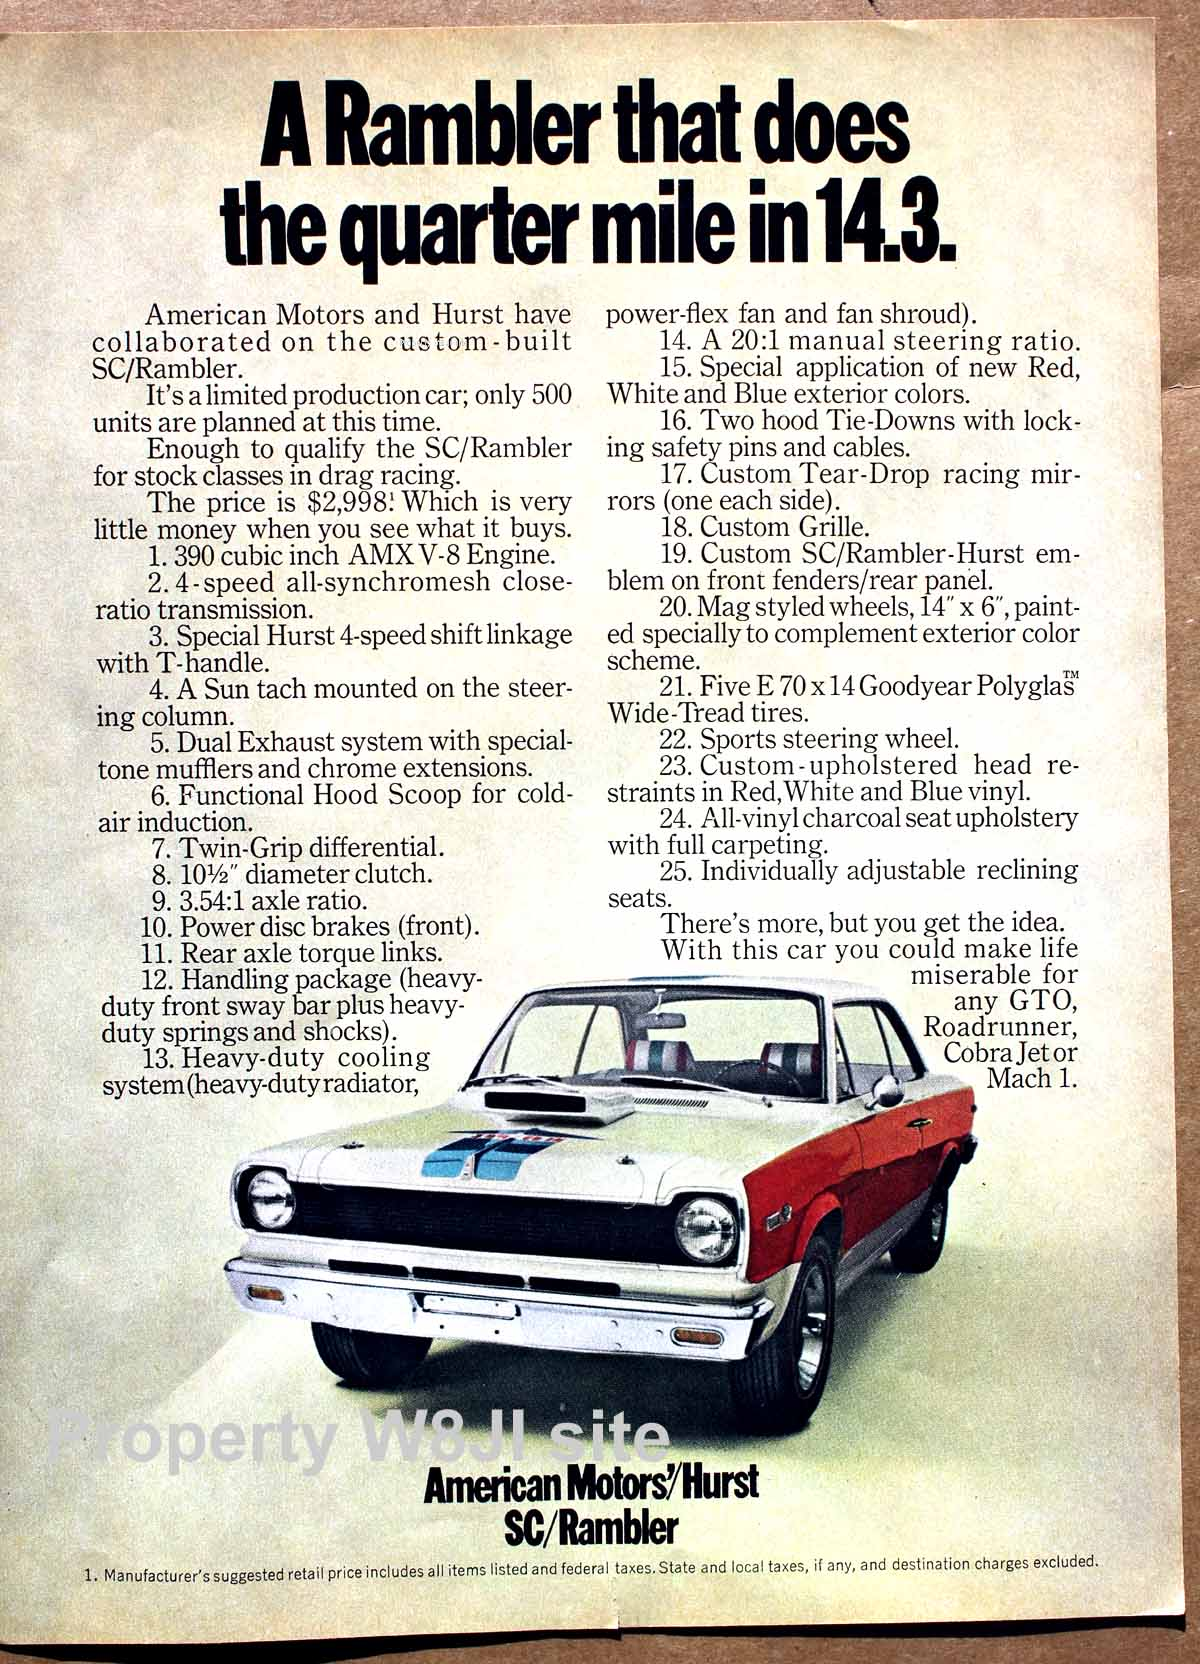 SC Rambler supercar advertisement